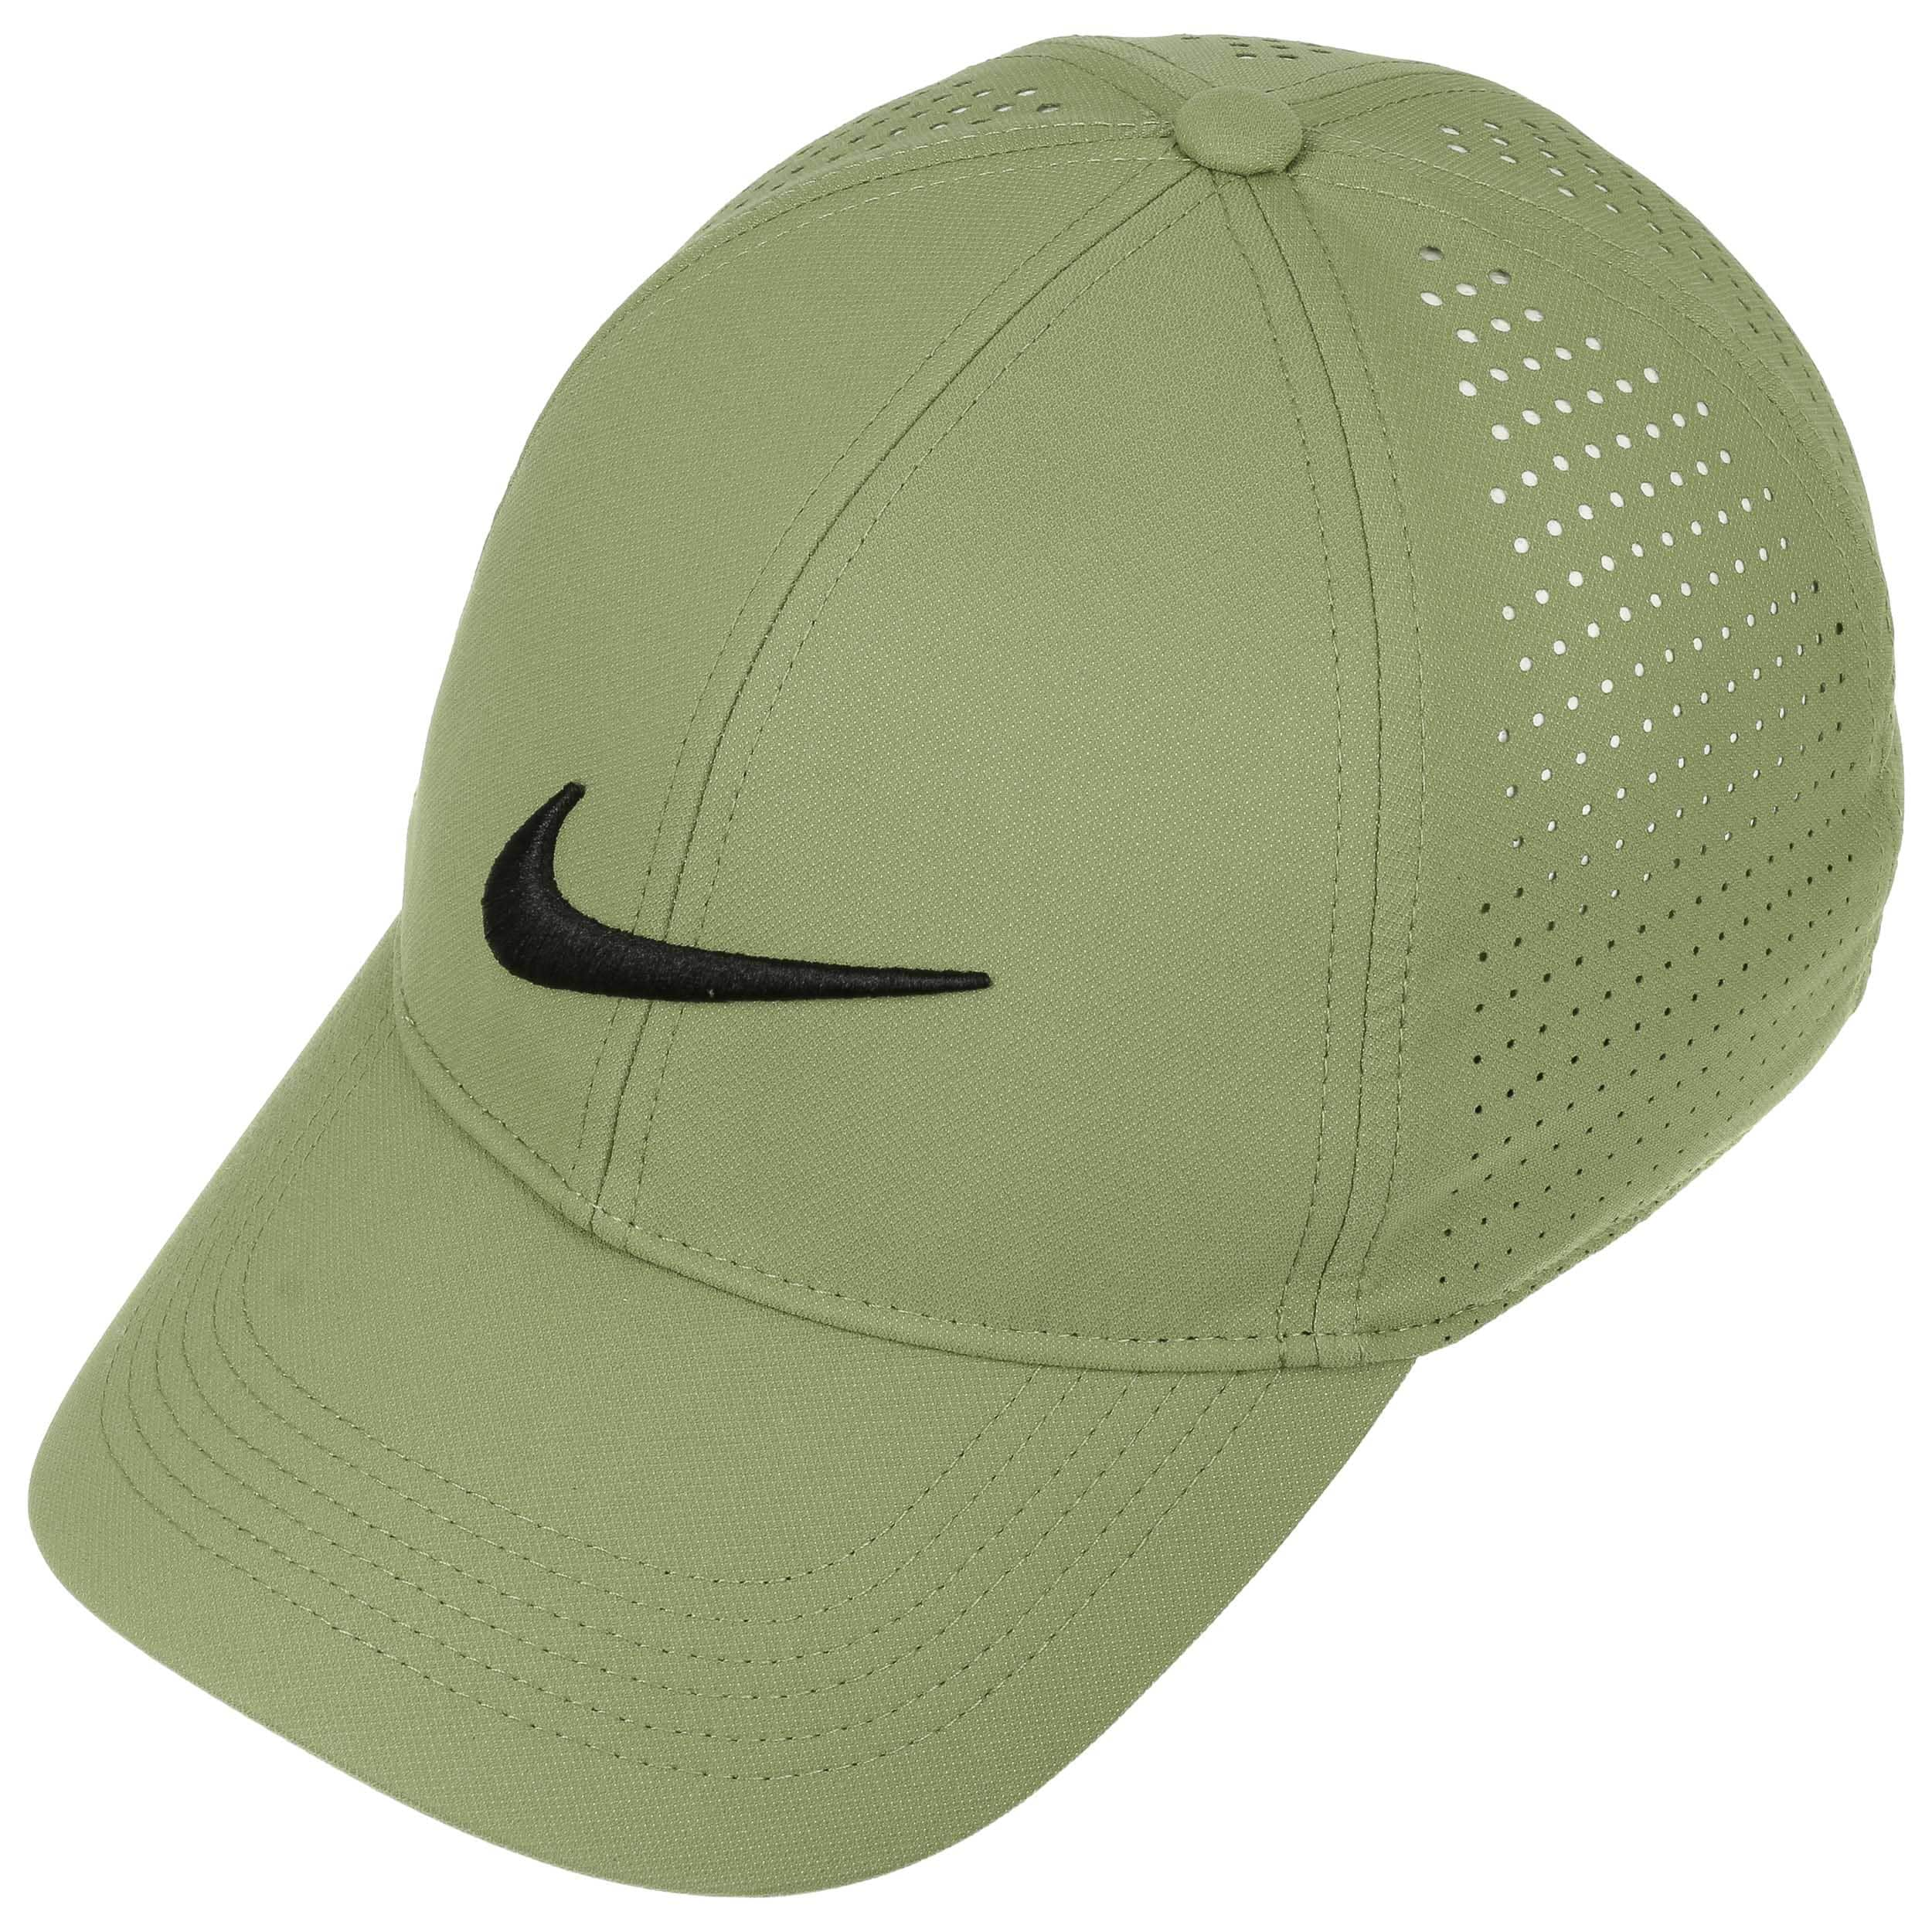 Legacy 91 Perf Strapback Cap by Nike - olive 1 ... fe151c30855